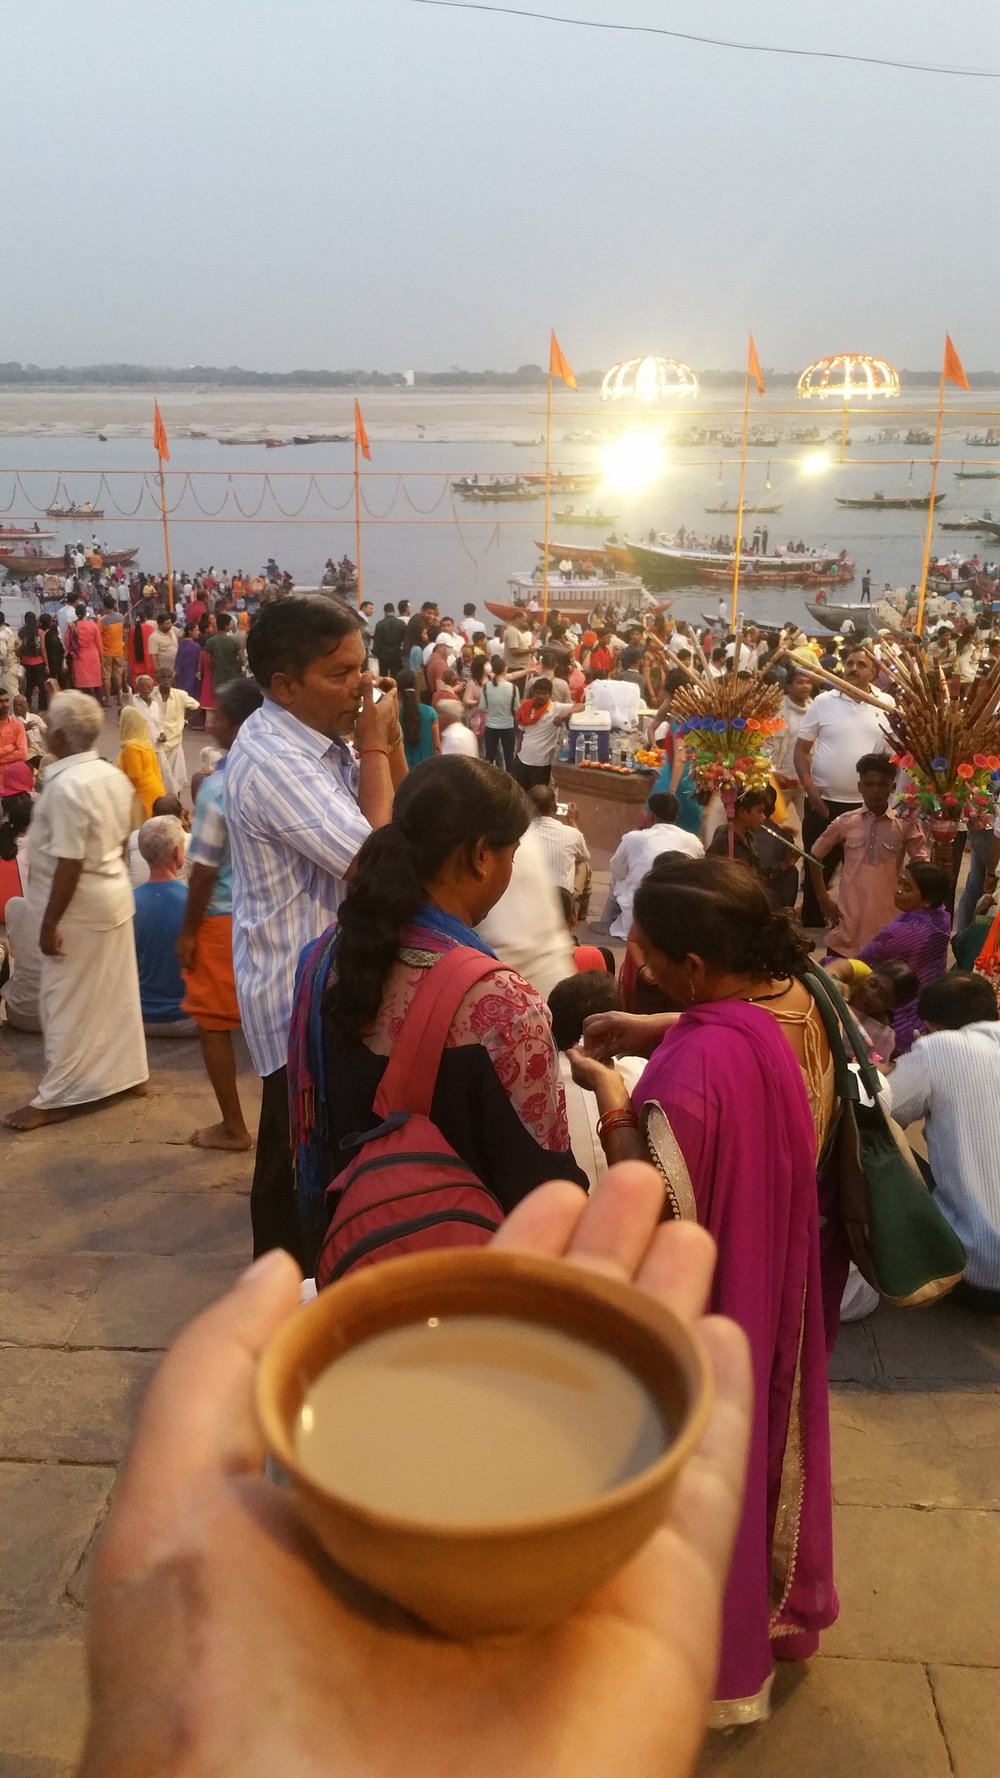 chai by the ghats remains my favorite